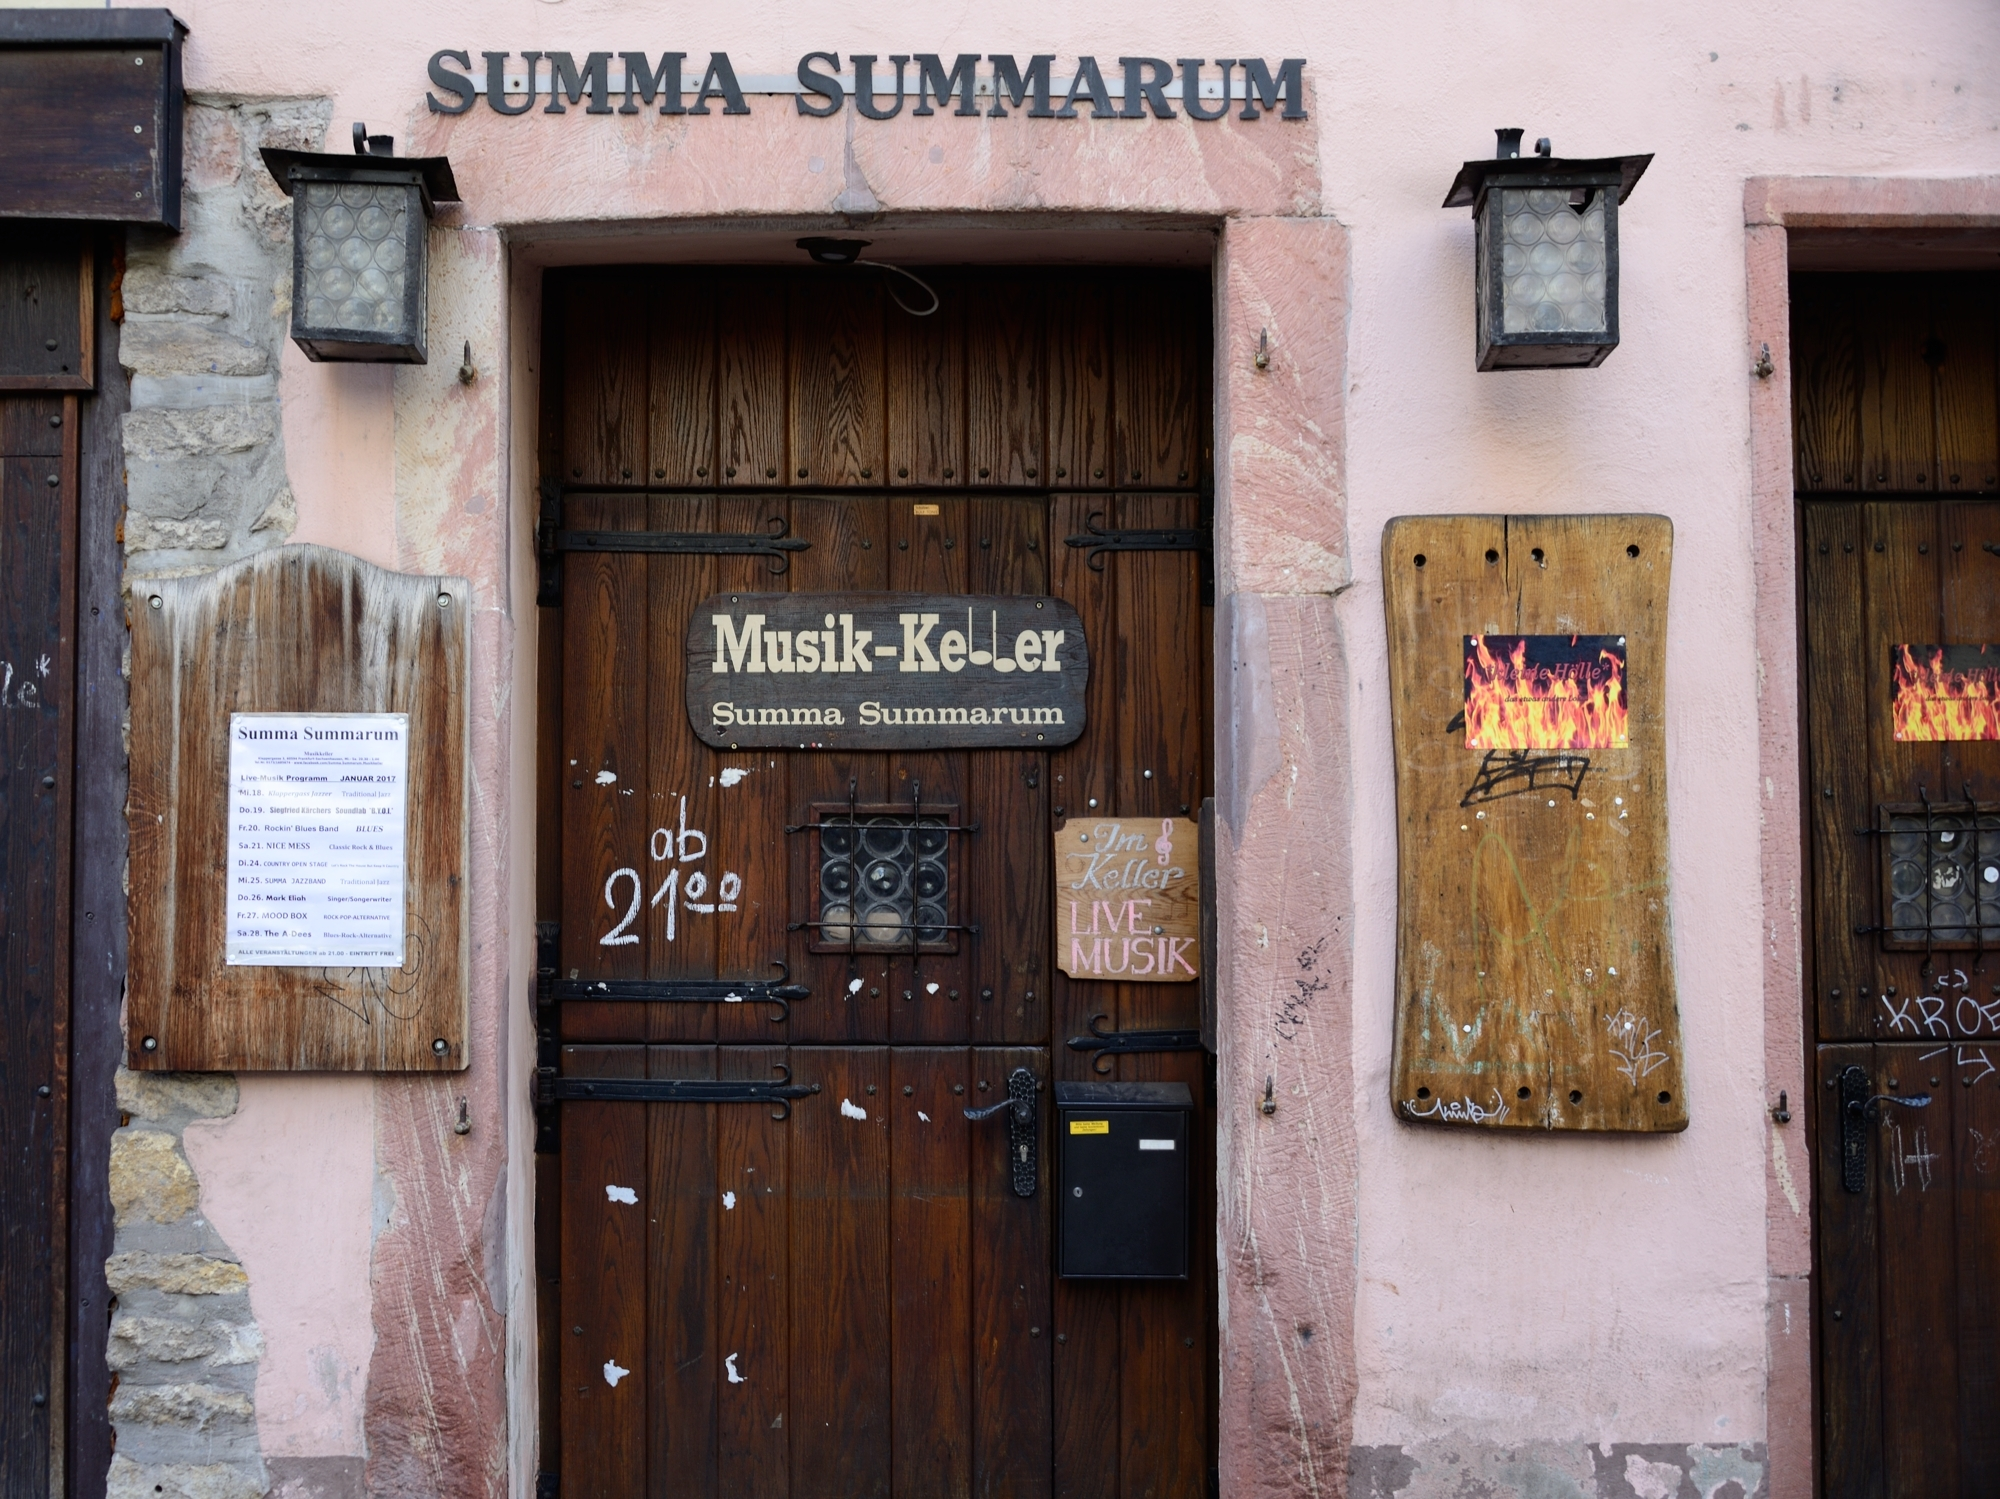 Summa Summarum, a great little live band venue and jazz club deep in the cellar of this old 17th century building